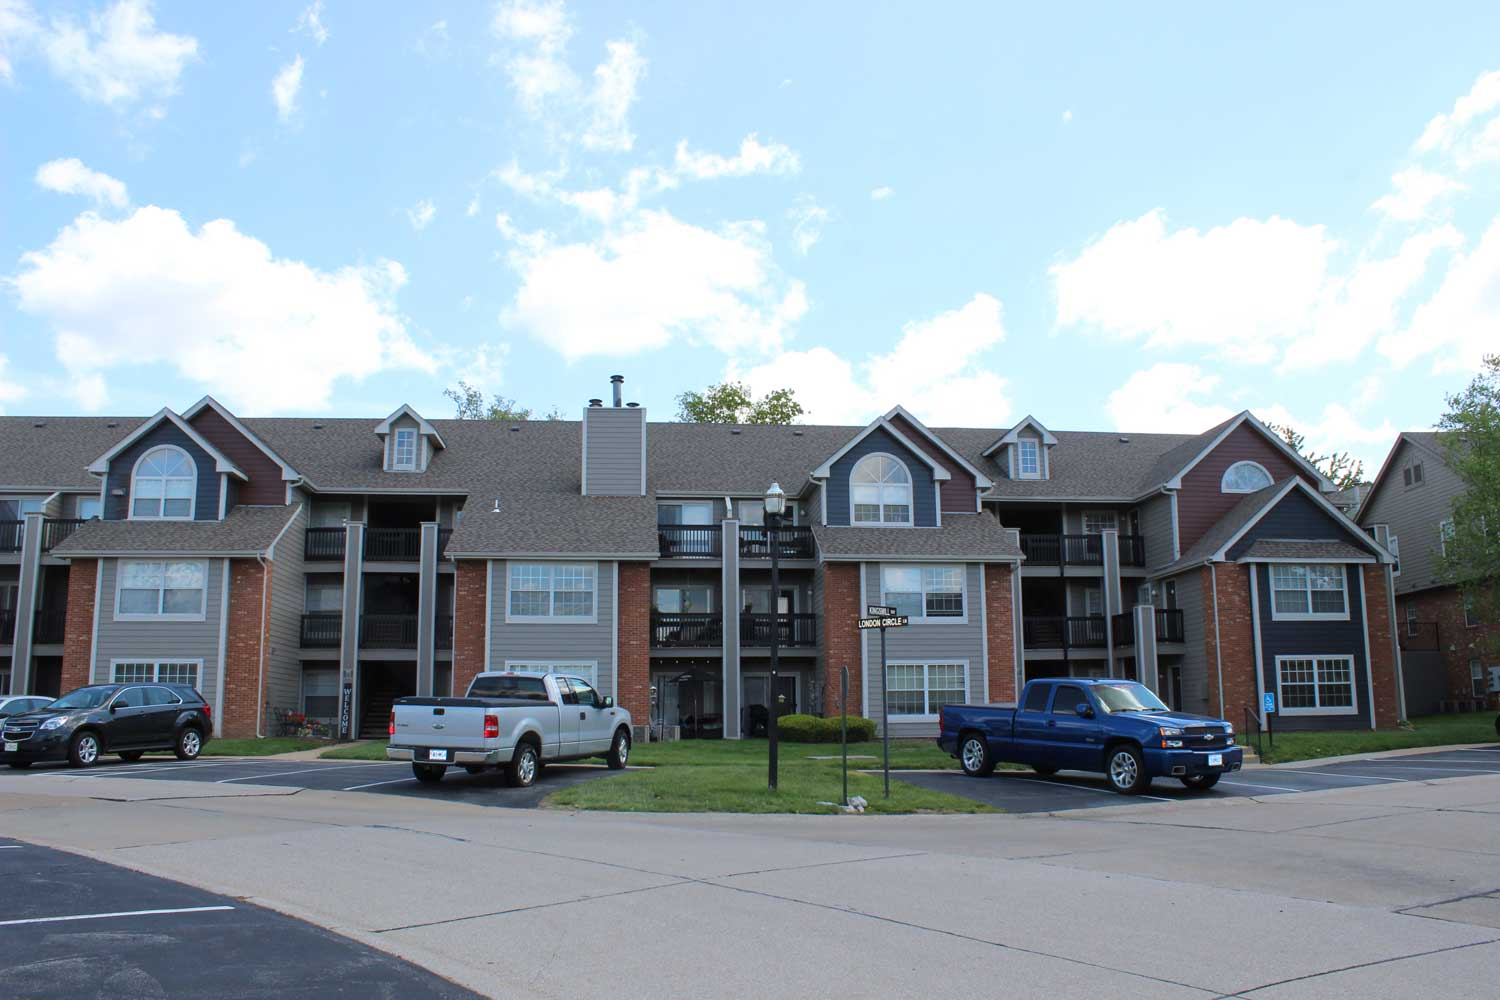 Two Bedroom Apartment at Polo Downs Apartments in Fenton, MO